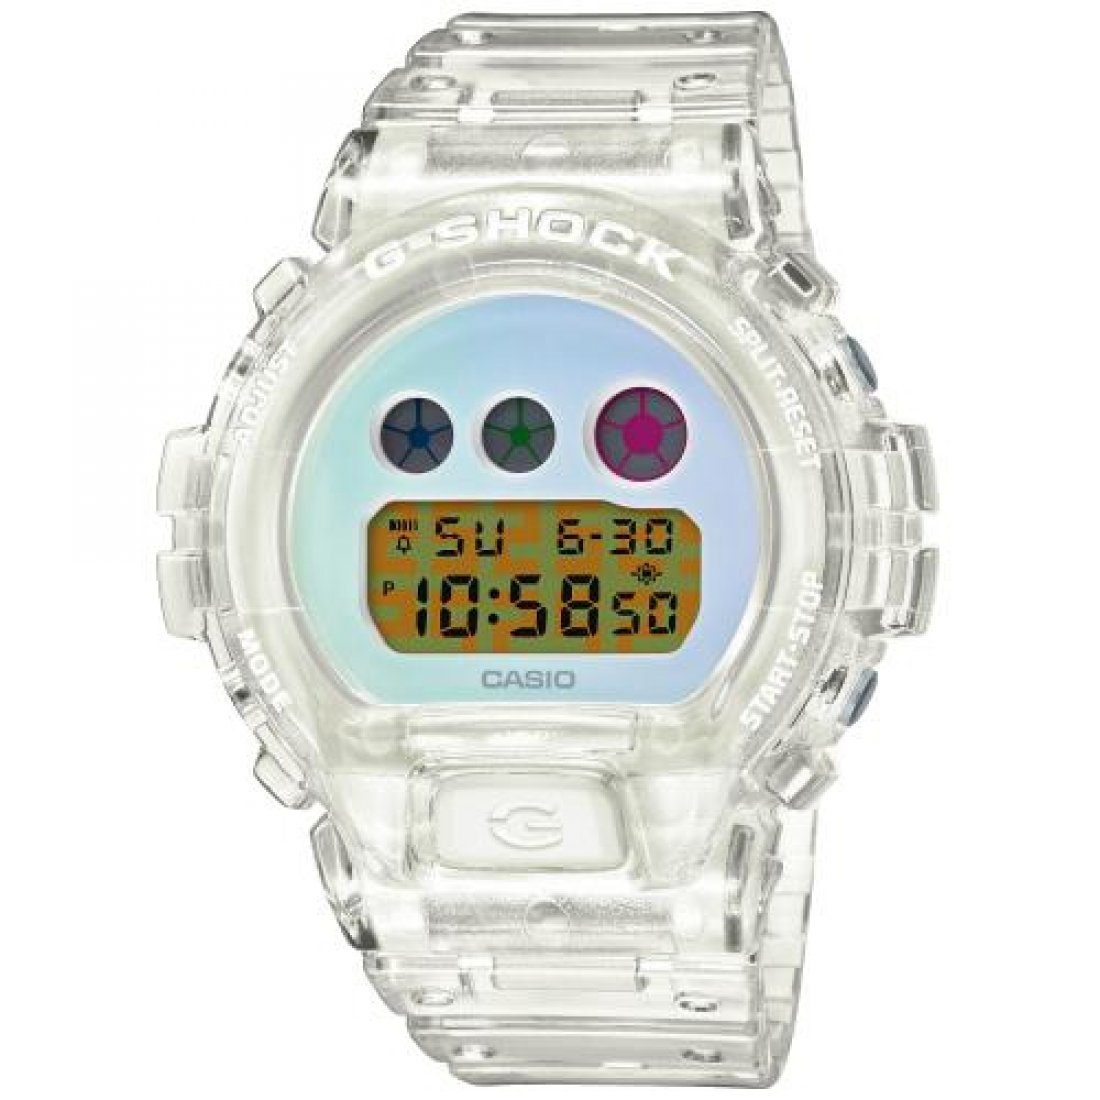 Casio G-Shock DW-6900SP-7ER